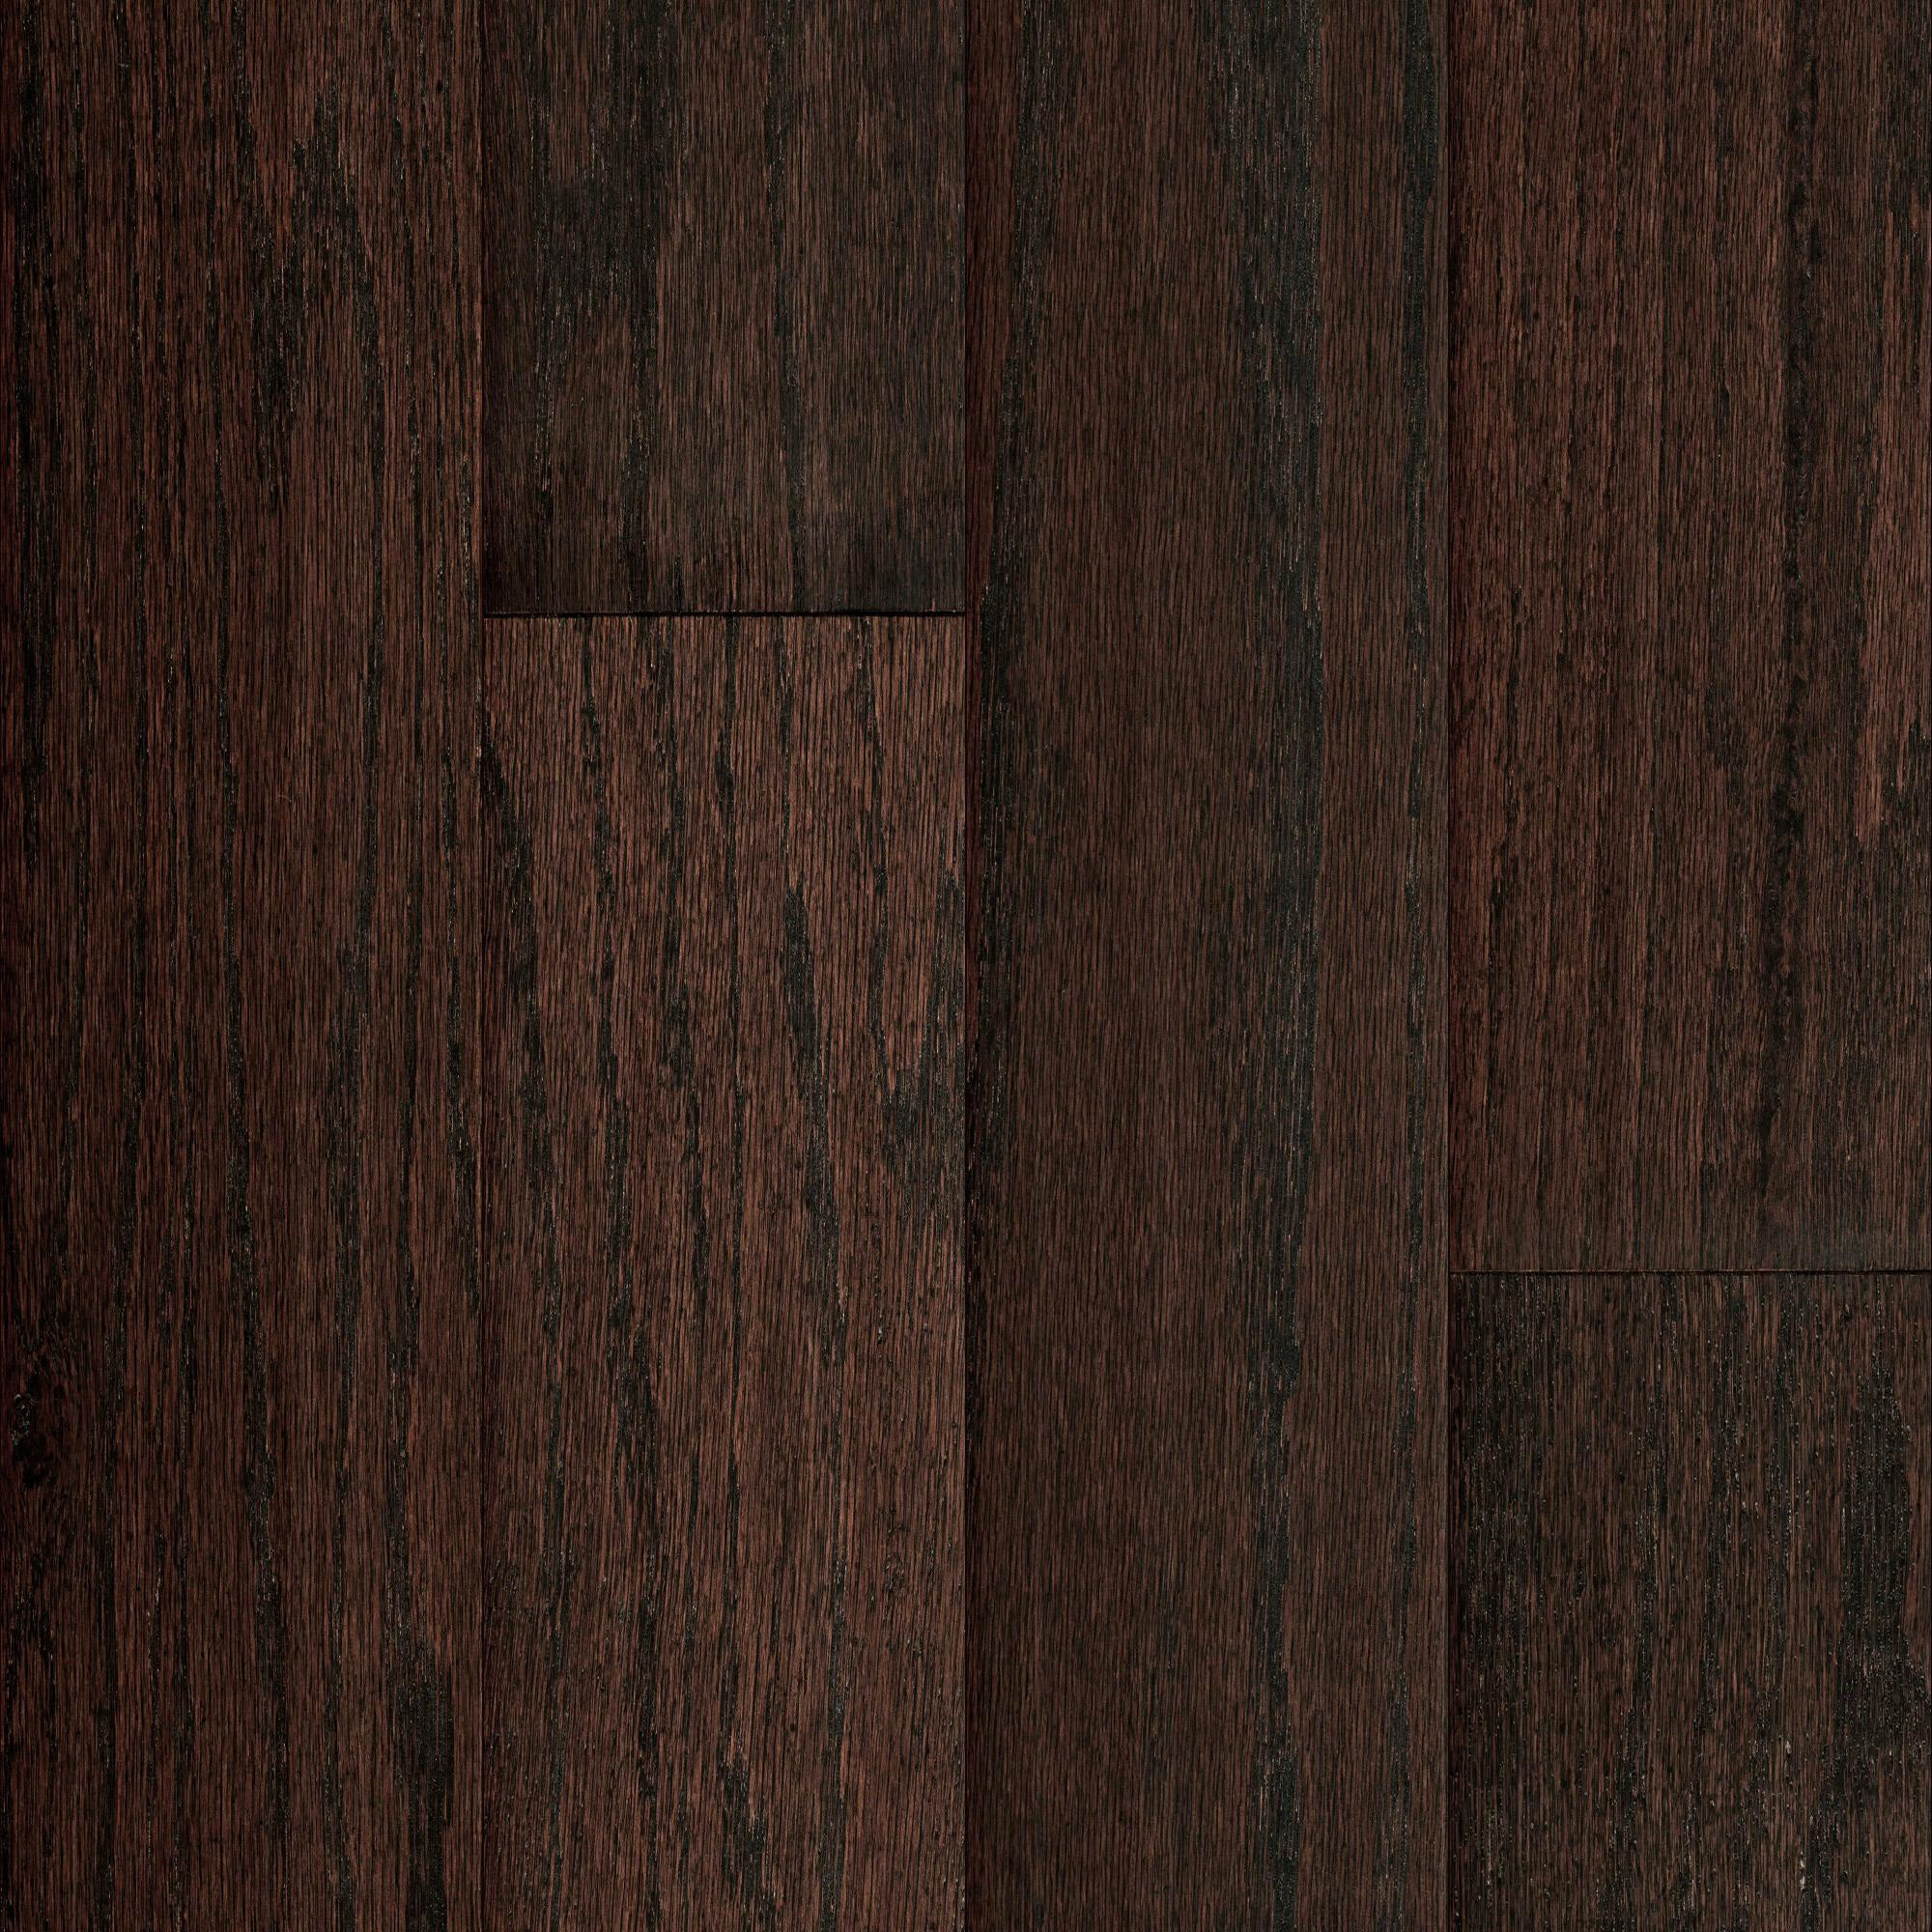 Timberland Hardwood Flooring Prices Of Mullican Newtown Plank Oak Bridle 1 2 Thick 5 Wide Engineered with Regard to Mullican Newtown Plank Oak Bridle 1 2 Thick 5 Wide Engineered Hardwood Flooring